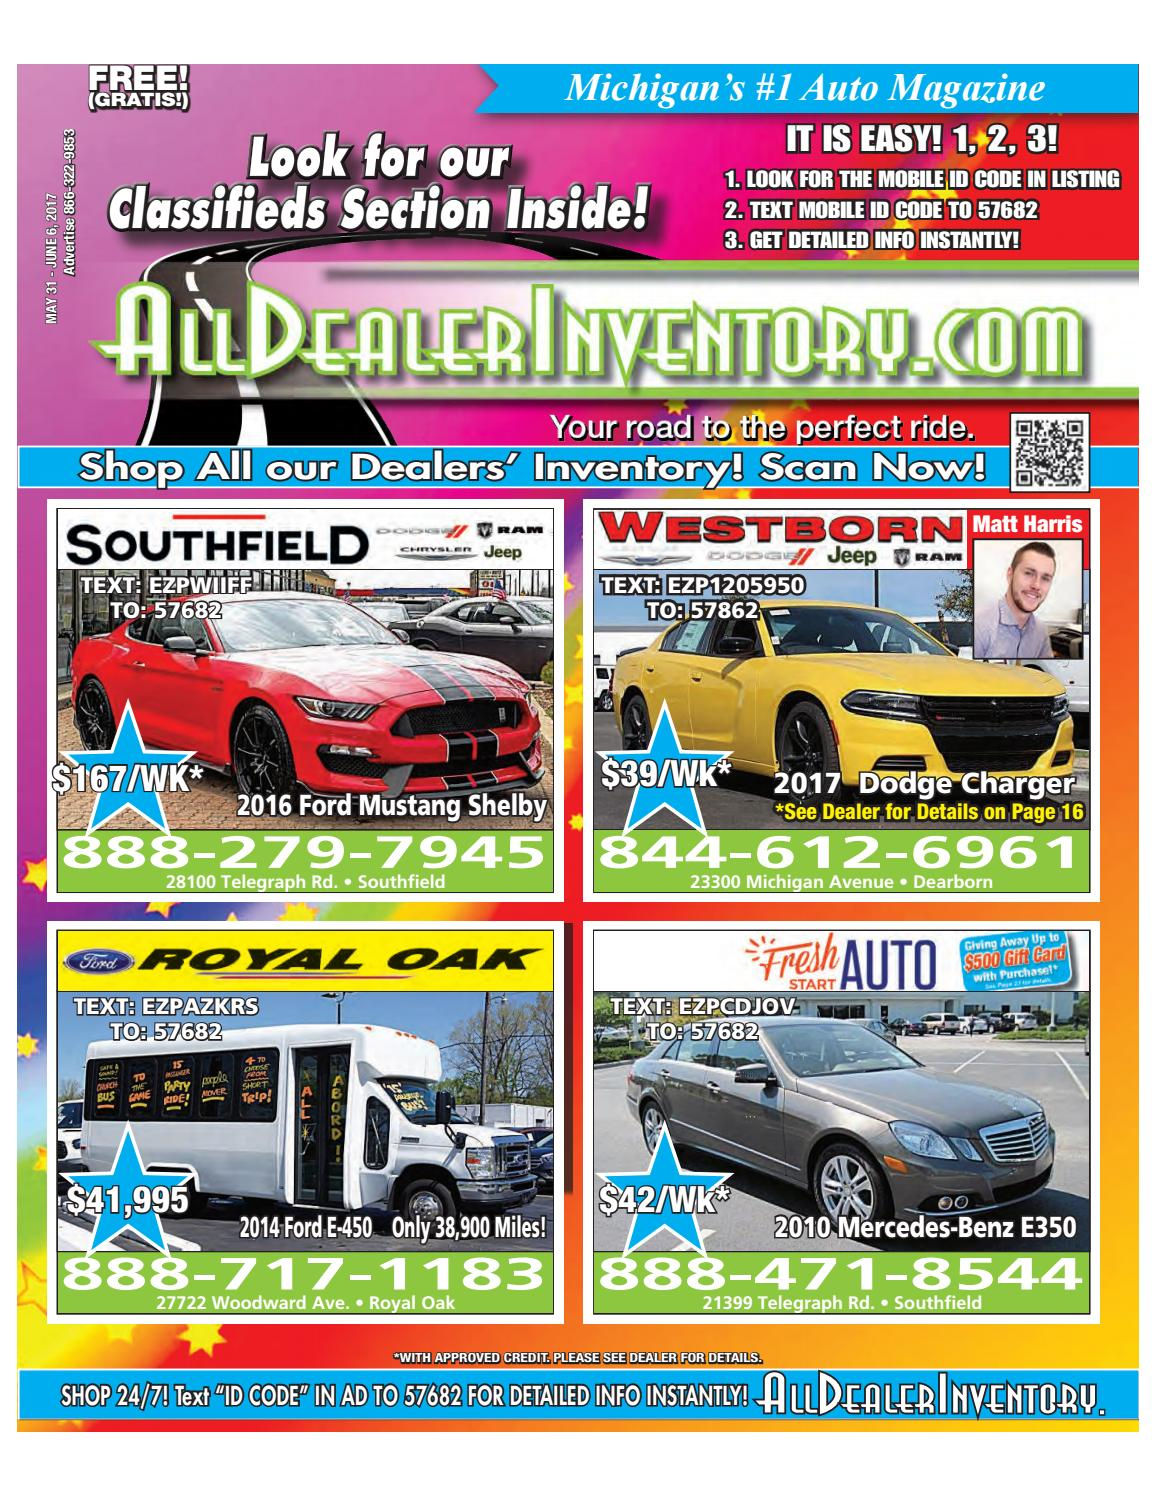 All Dealer Inventory's May 31st Digital Edition! Best